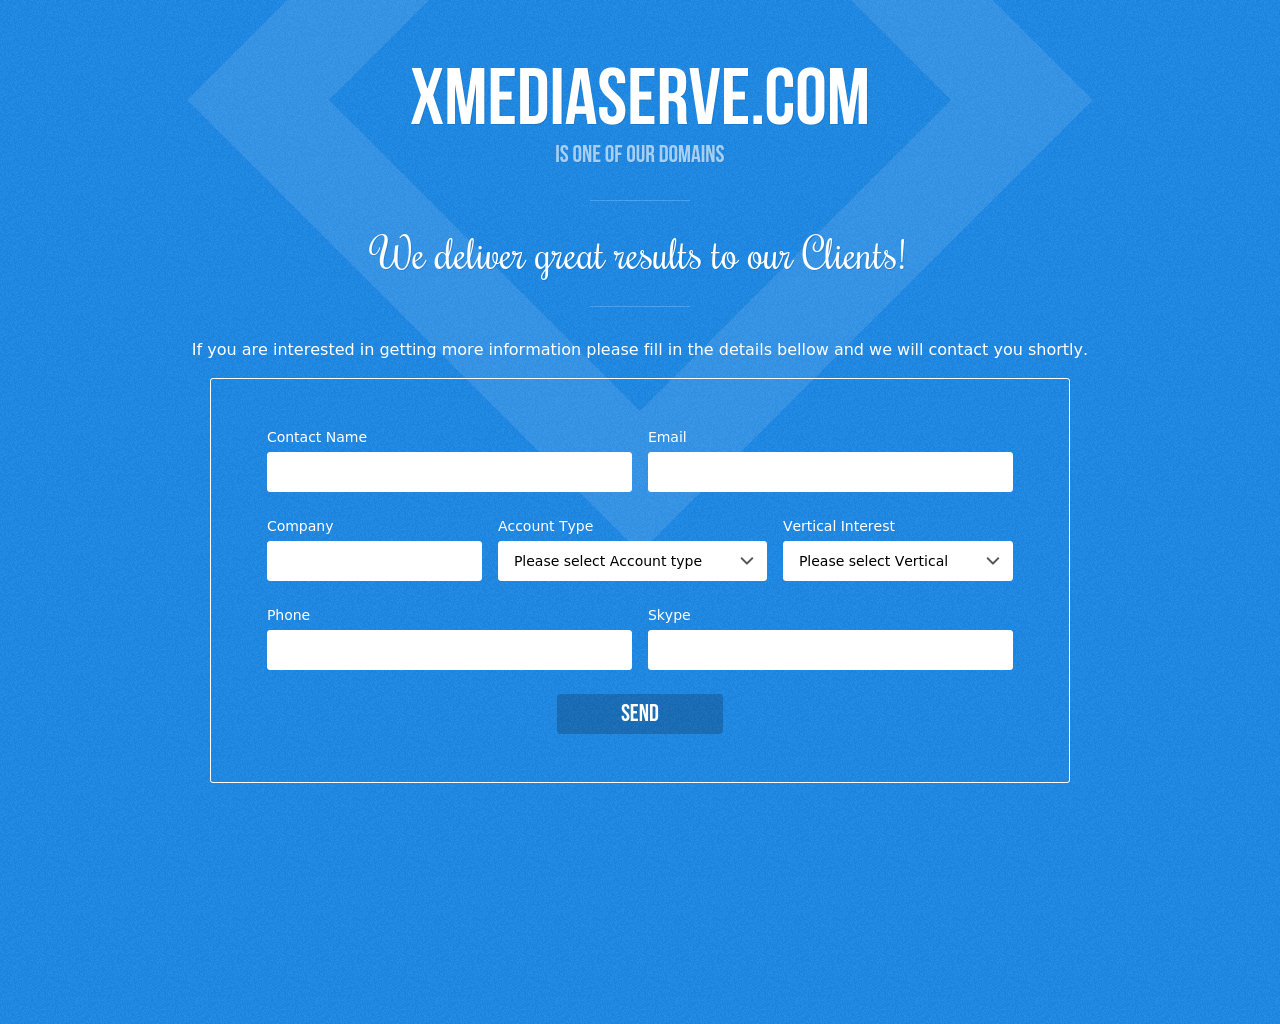 XMEDIASERVE.COM-Advertising-Reviews-Pricing